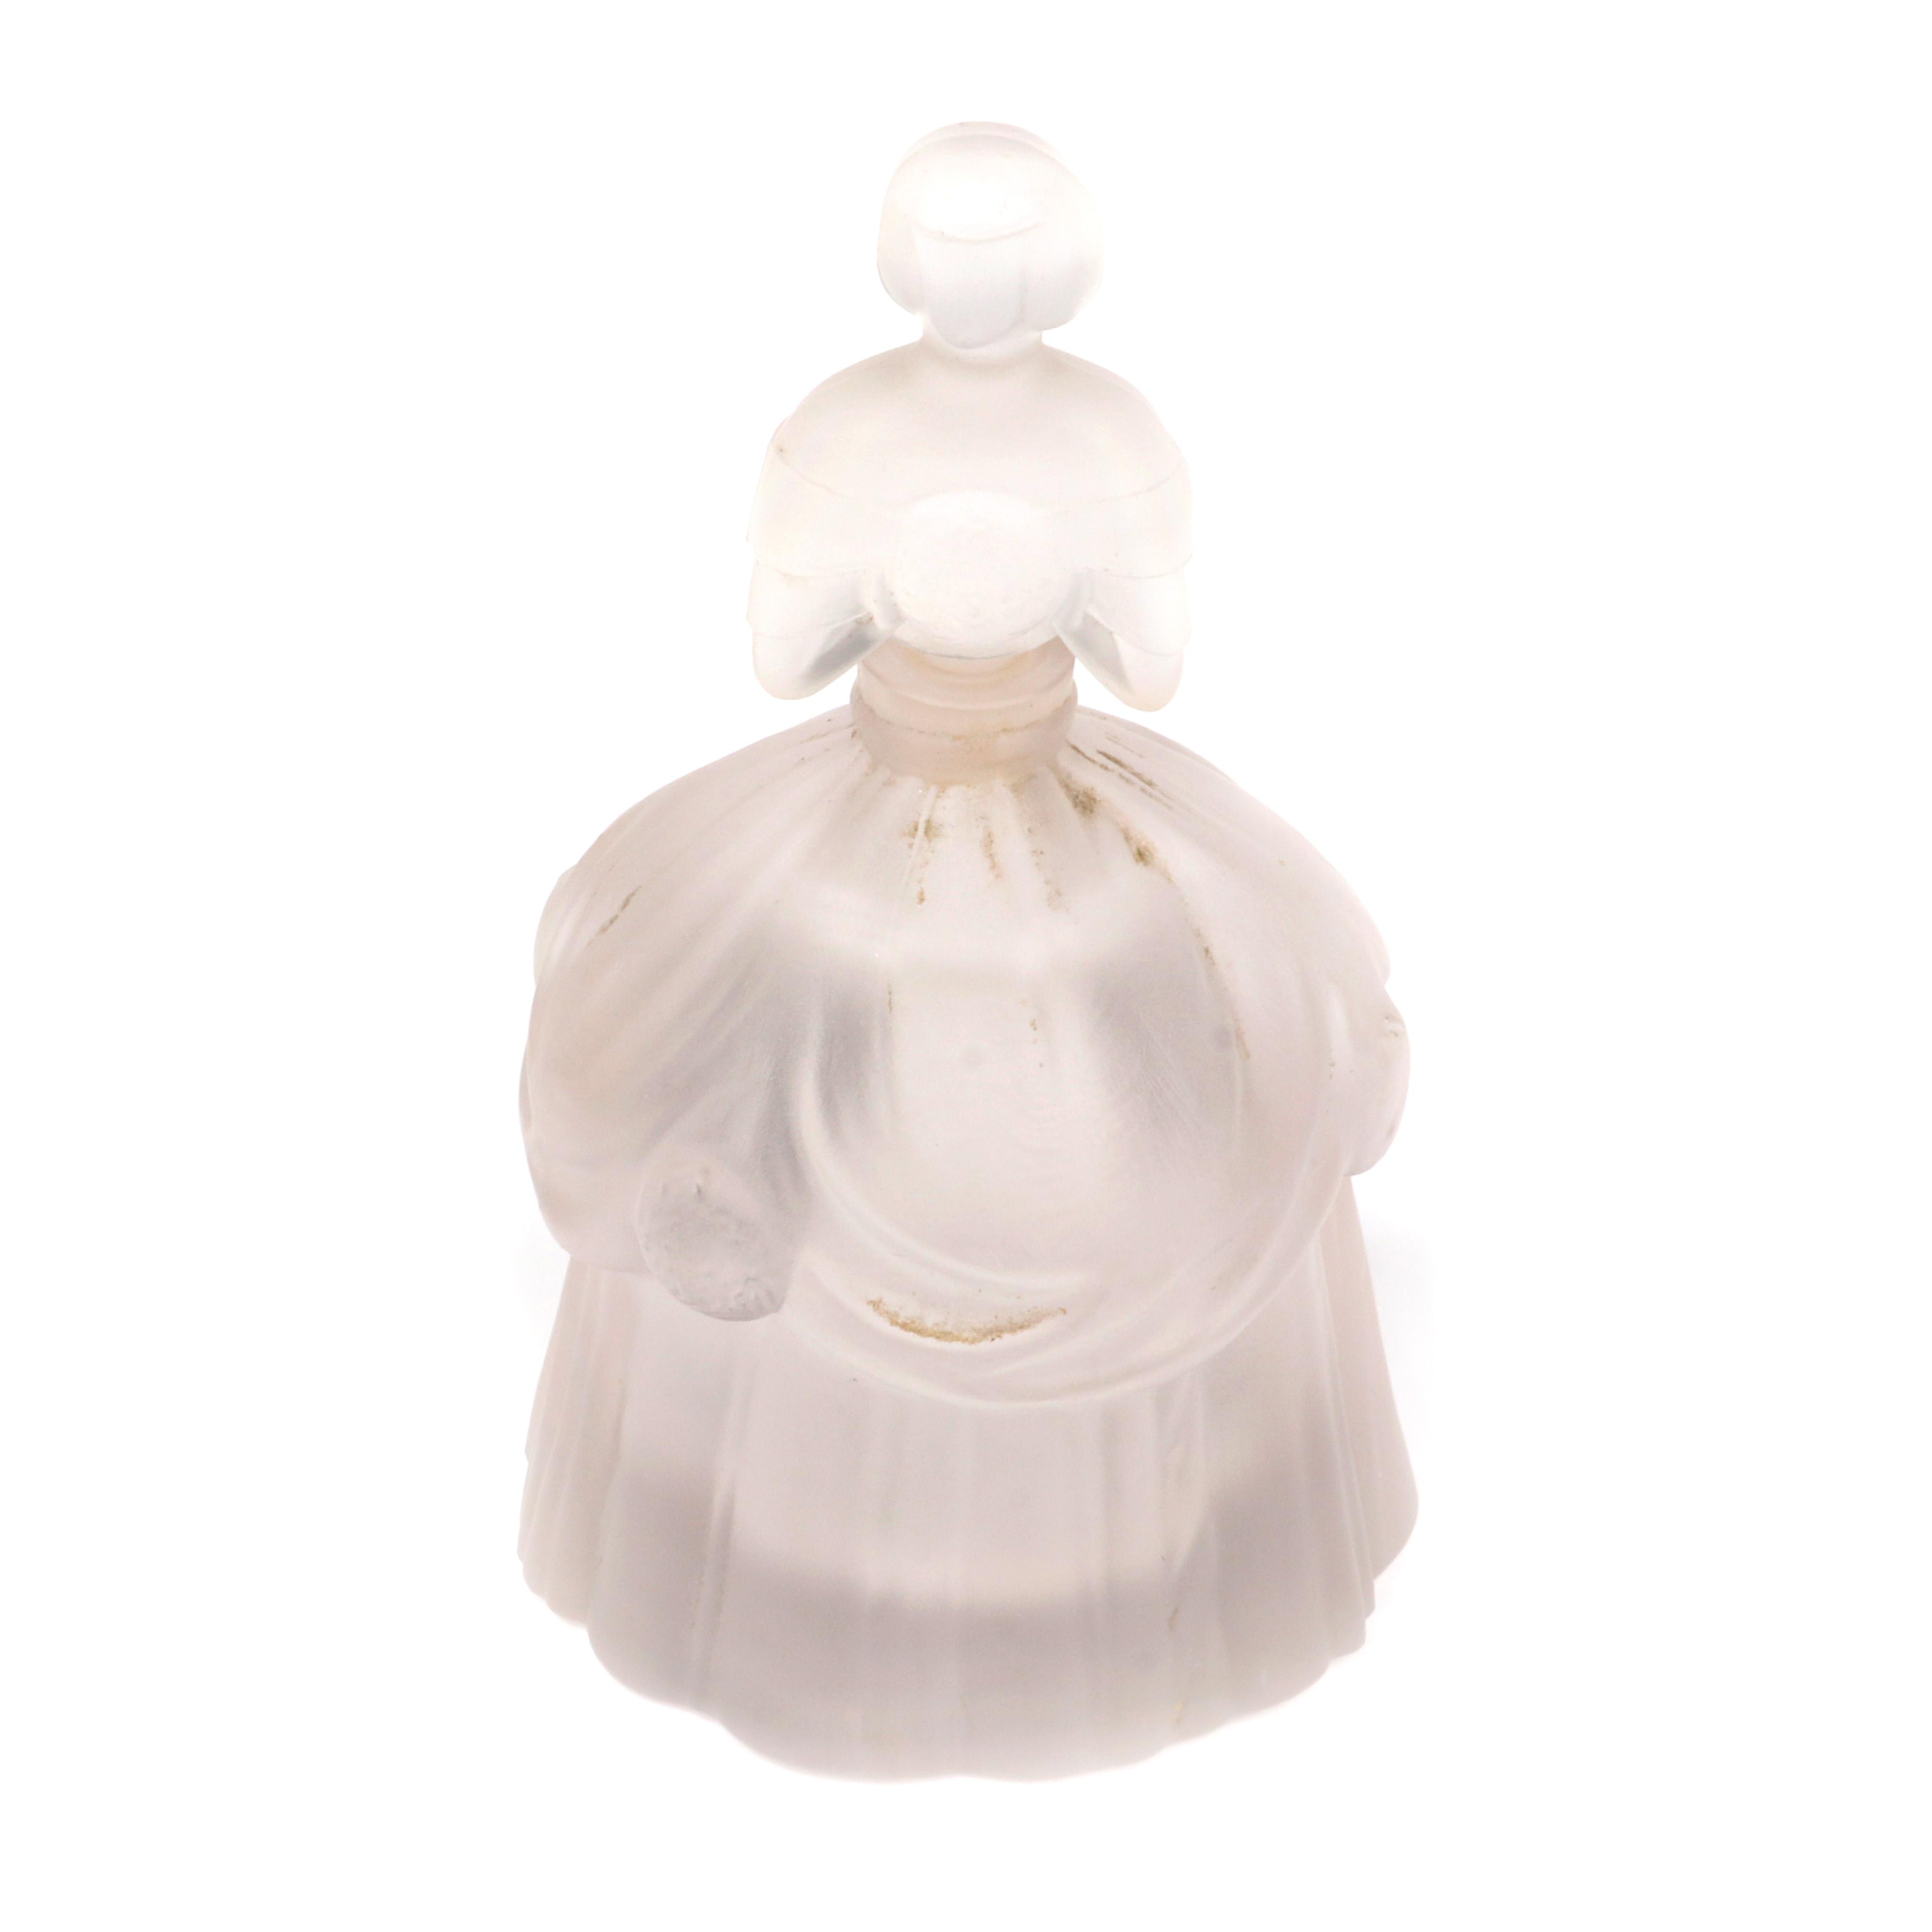 """Eisenberg Original figural lady with draping dress fragrance bottle with frosted glass, not marked. 3 1/2"""" x 2 1/4"""""""